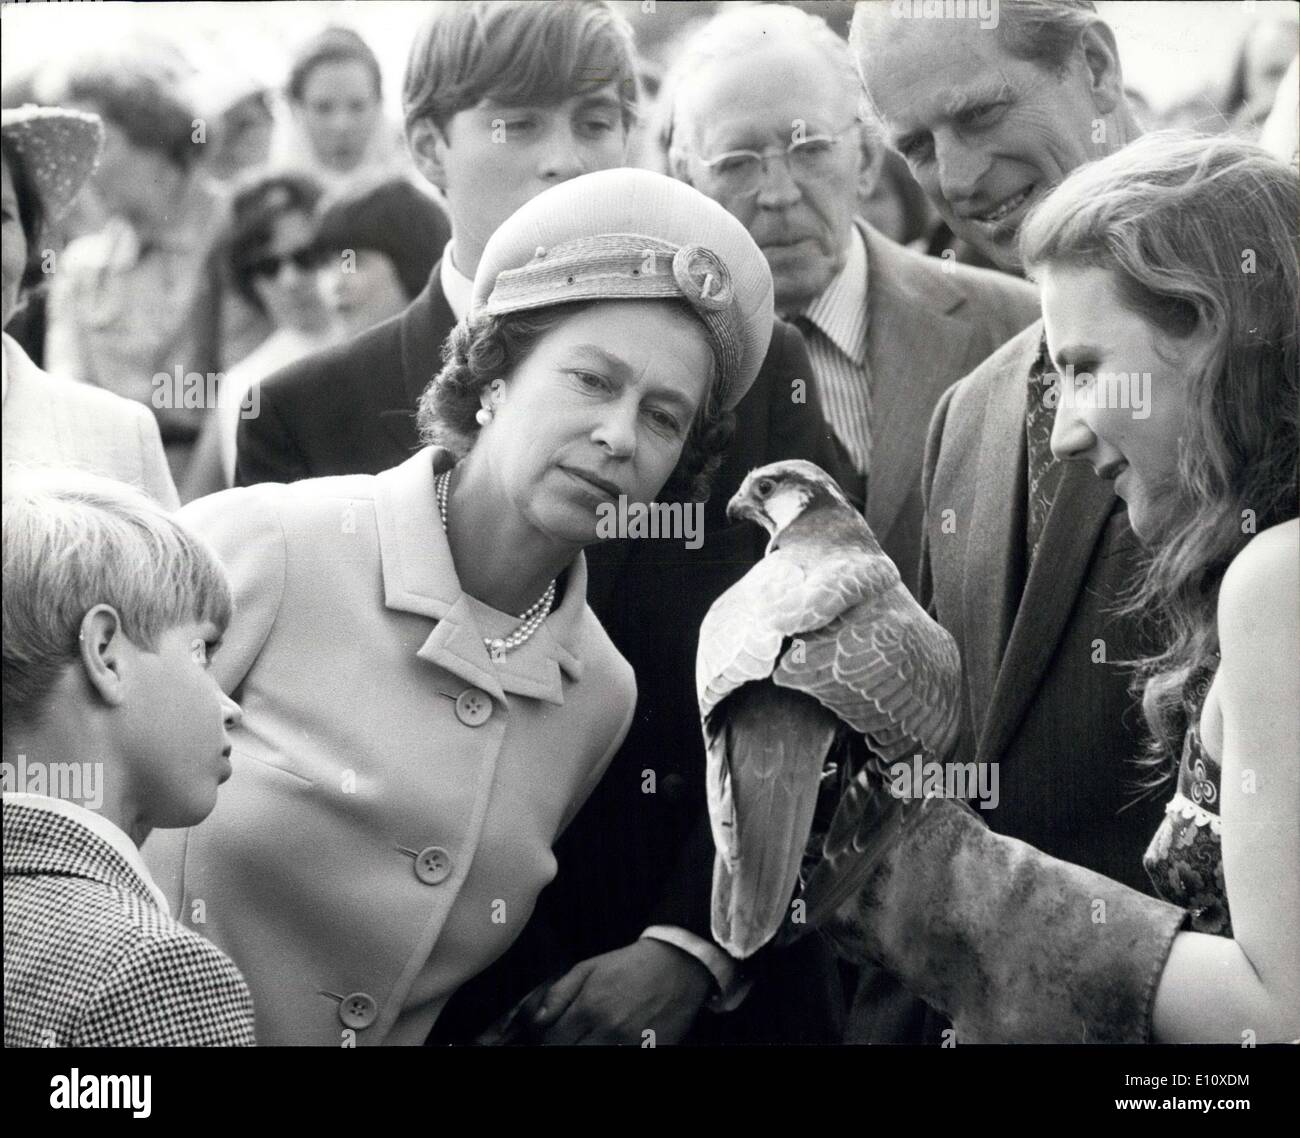 Jul. 26, 1974 - The Royal Family visit the country home of the Duke of Wellington to attend a game fair: The Queen and Prince Philip with Prince Andrew and Prince Edward today paid a visit to Stratfield Saye, the Duke of Wellingotn's country home near Reading, Berkshire, wher they attended a game fair. They lunched privately with Lady Jane Wellesley (whose names has been linked romantically with the Prince of Wales) her parents, the Duke and Duchess of Wellington, and her four brothers, in a marquee at a Game Fair in the grounds of the Wellington's 6,000 acre estate - Stock Image